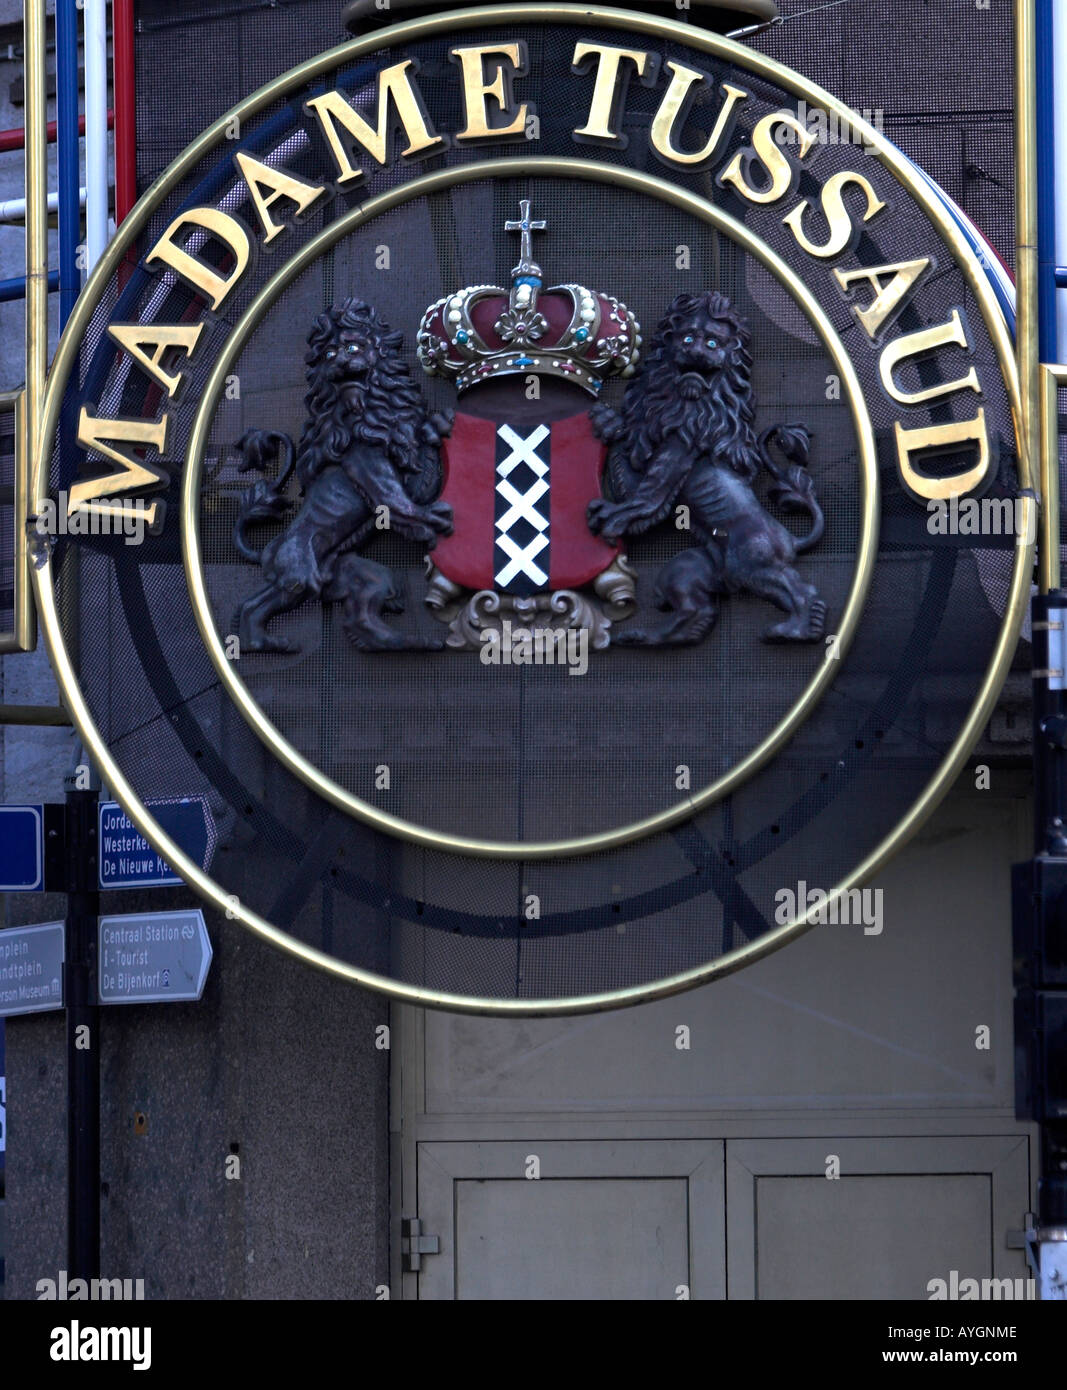 Sign at Madame Tussaud wax museum Amsterdam The Netherlands - Stock Image